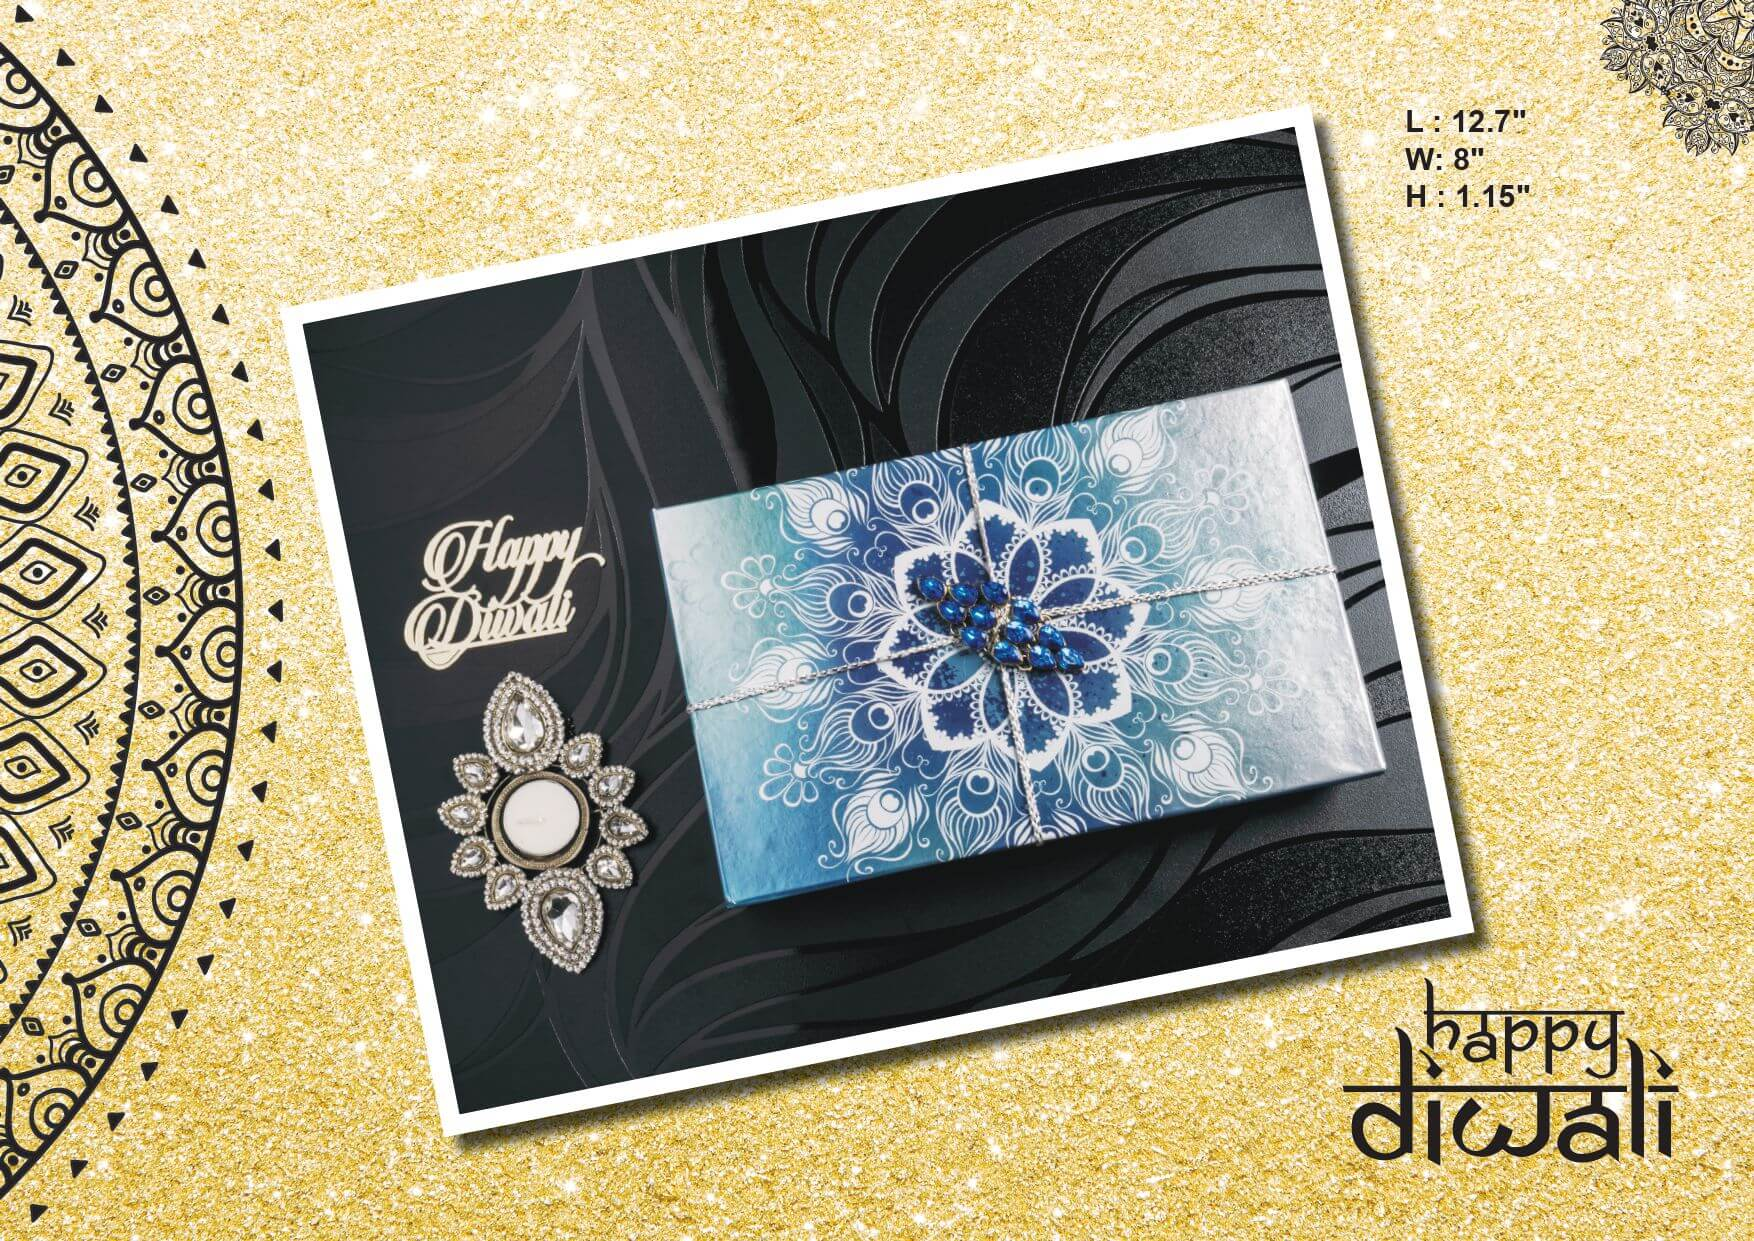 Diwali Gift Hampers For Corporate PRODUCT NO 007